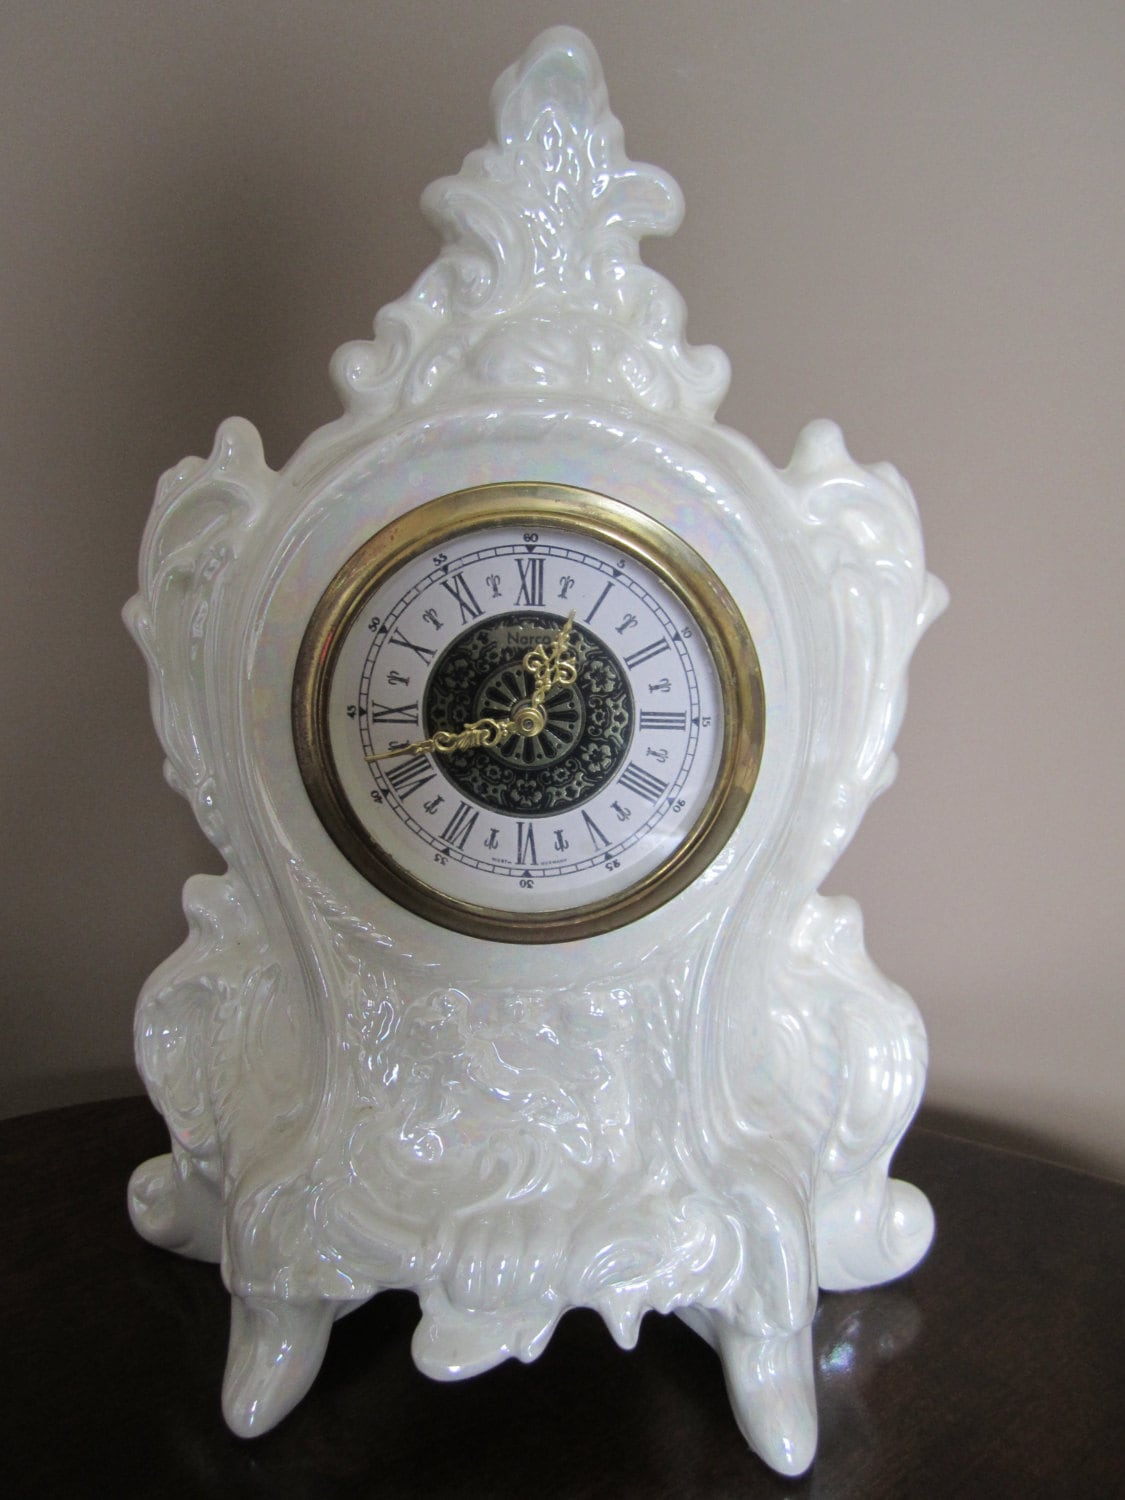 West Germany Narco Table Clock Circa 1978 White Porcelain